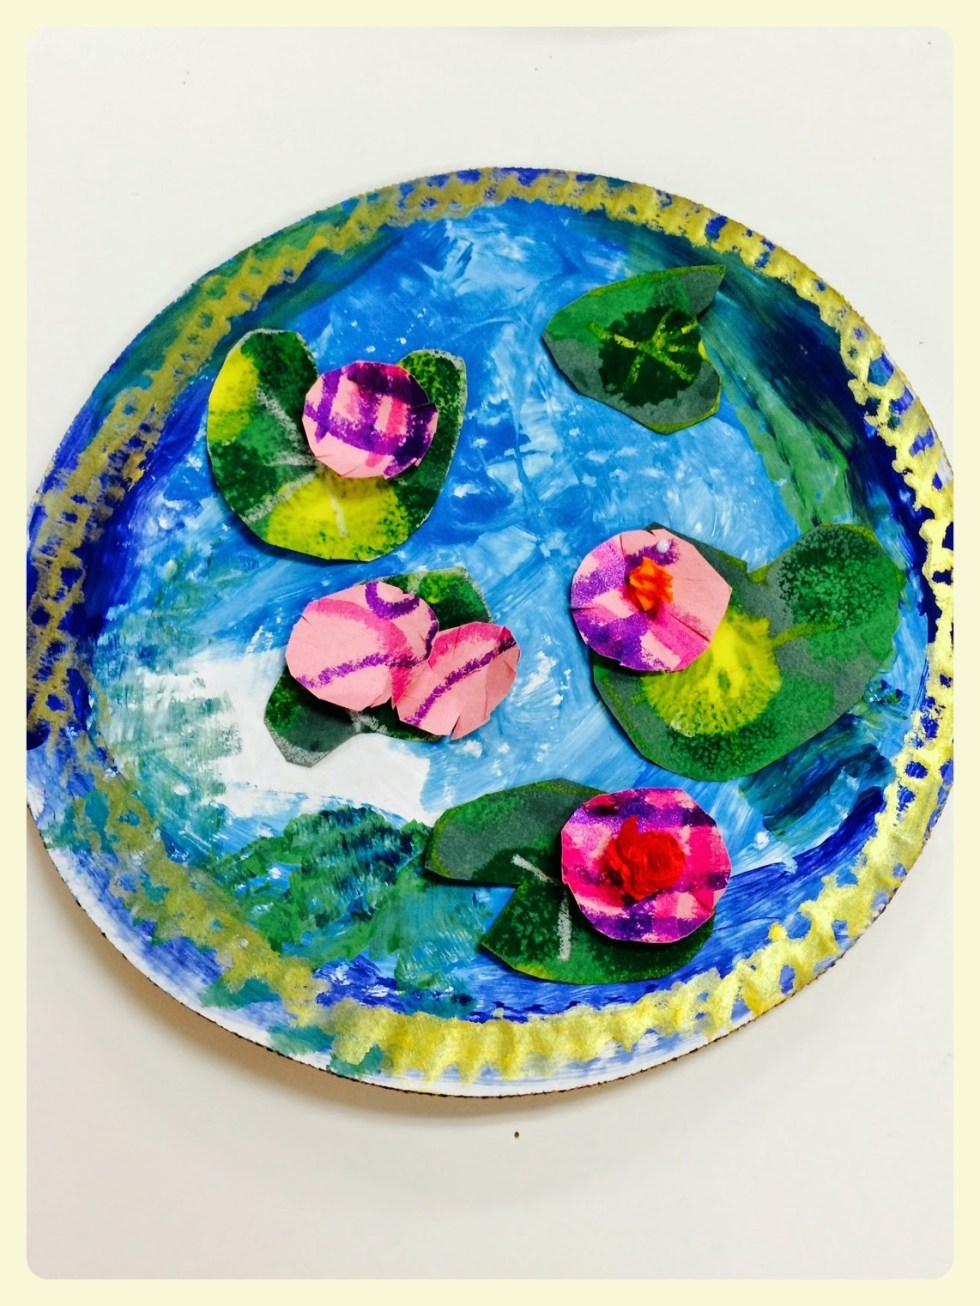 Mini Monet ponds on paper plates. Featured by Special Learning House. www.speciallearninghouse.com.jpg